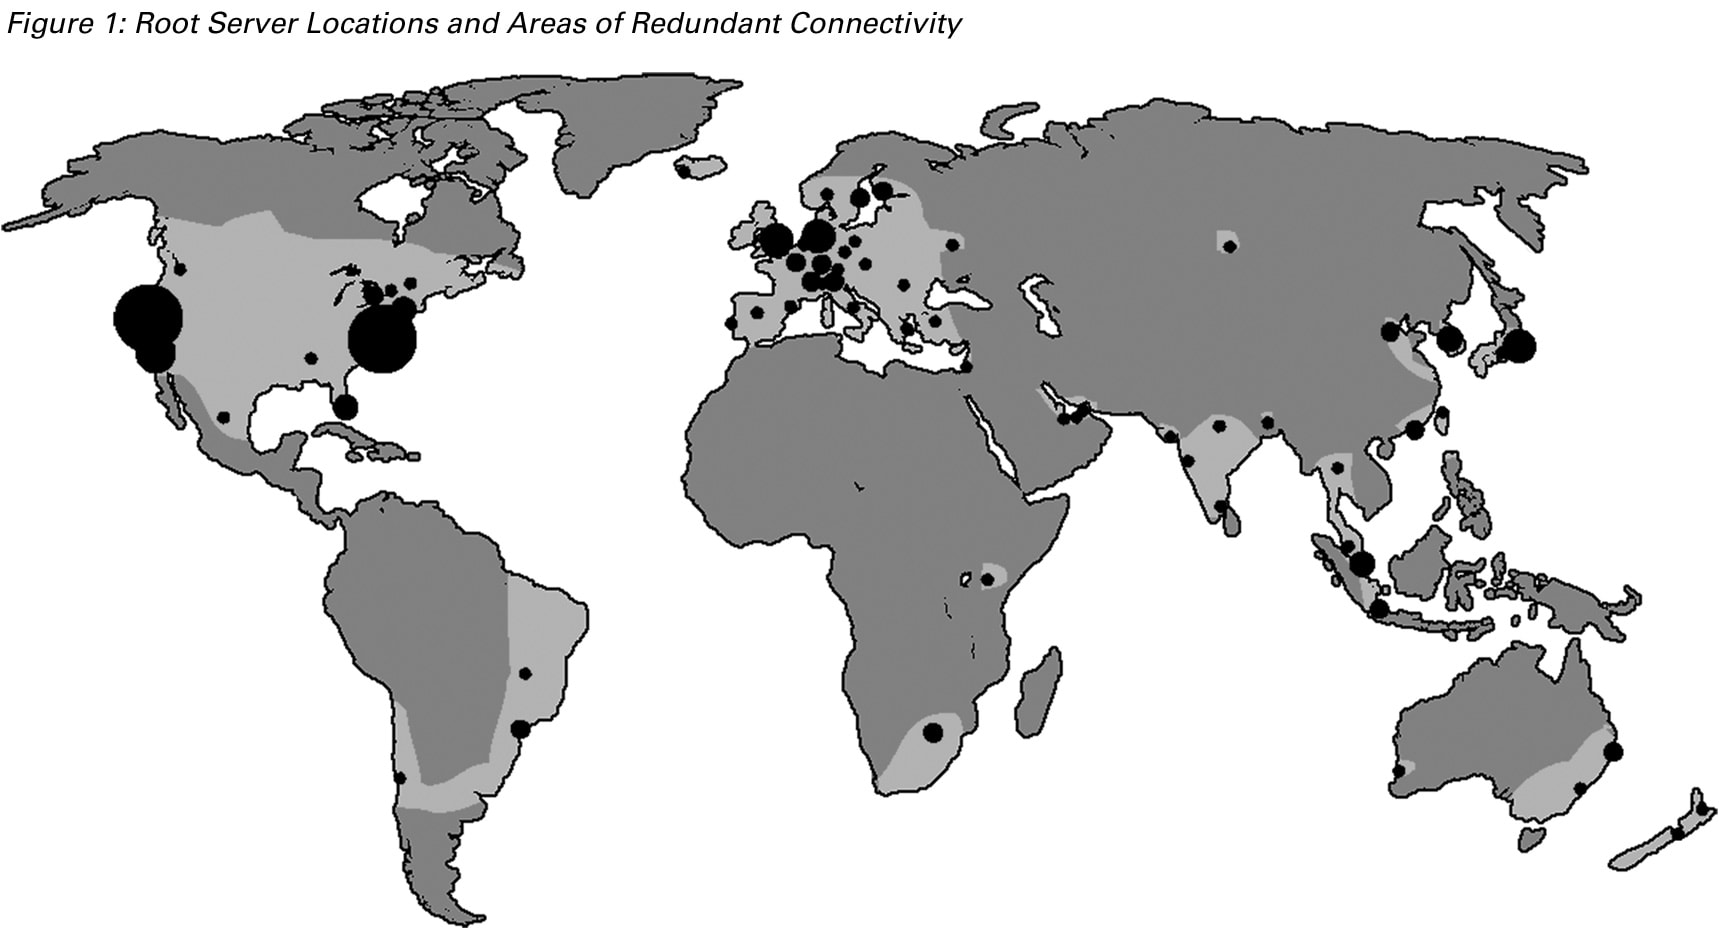 Geographic Implications of DNS Infrastructure Distribution